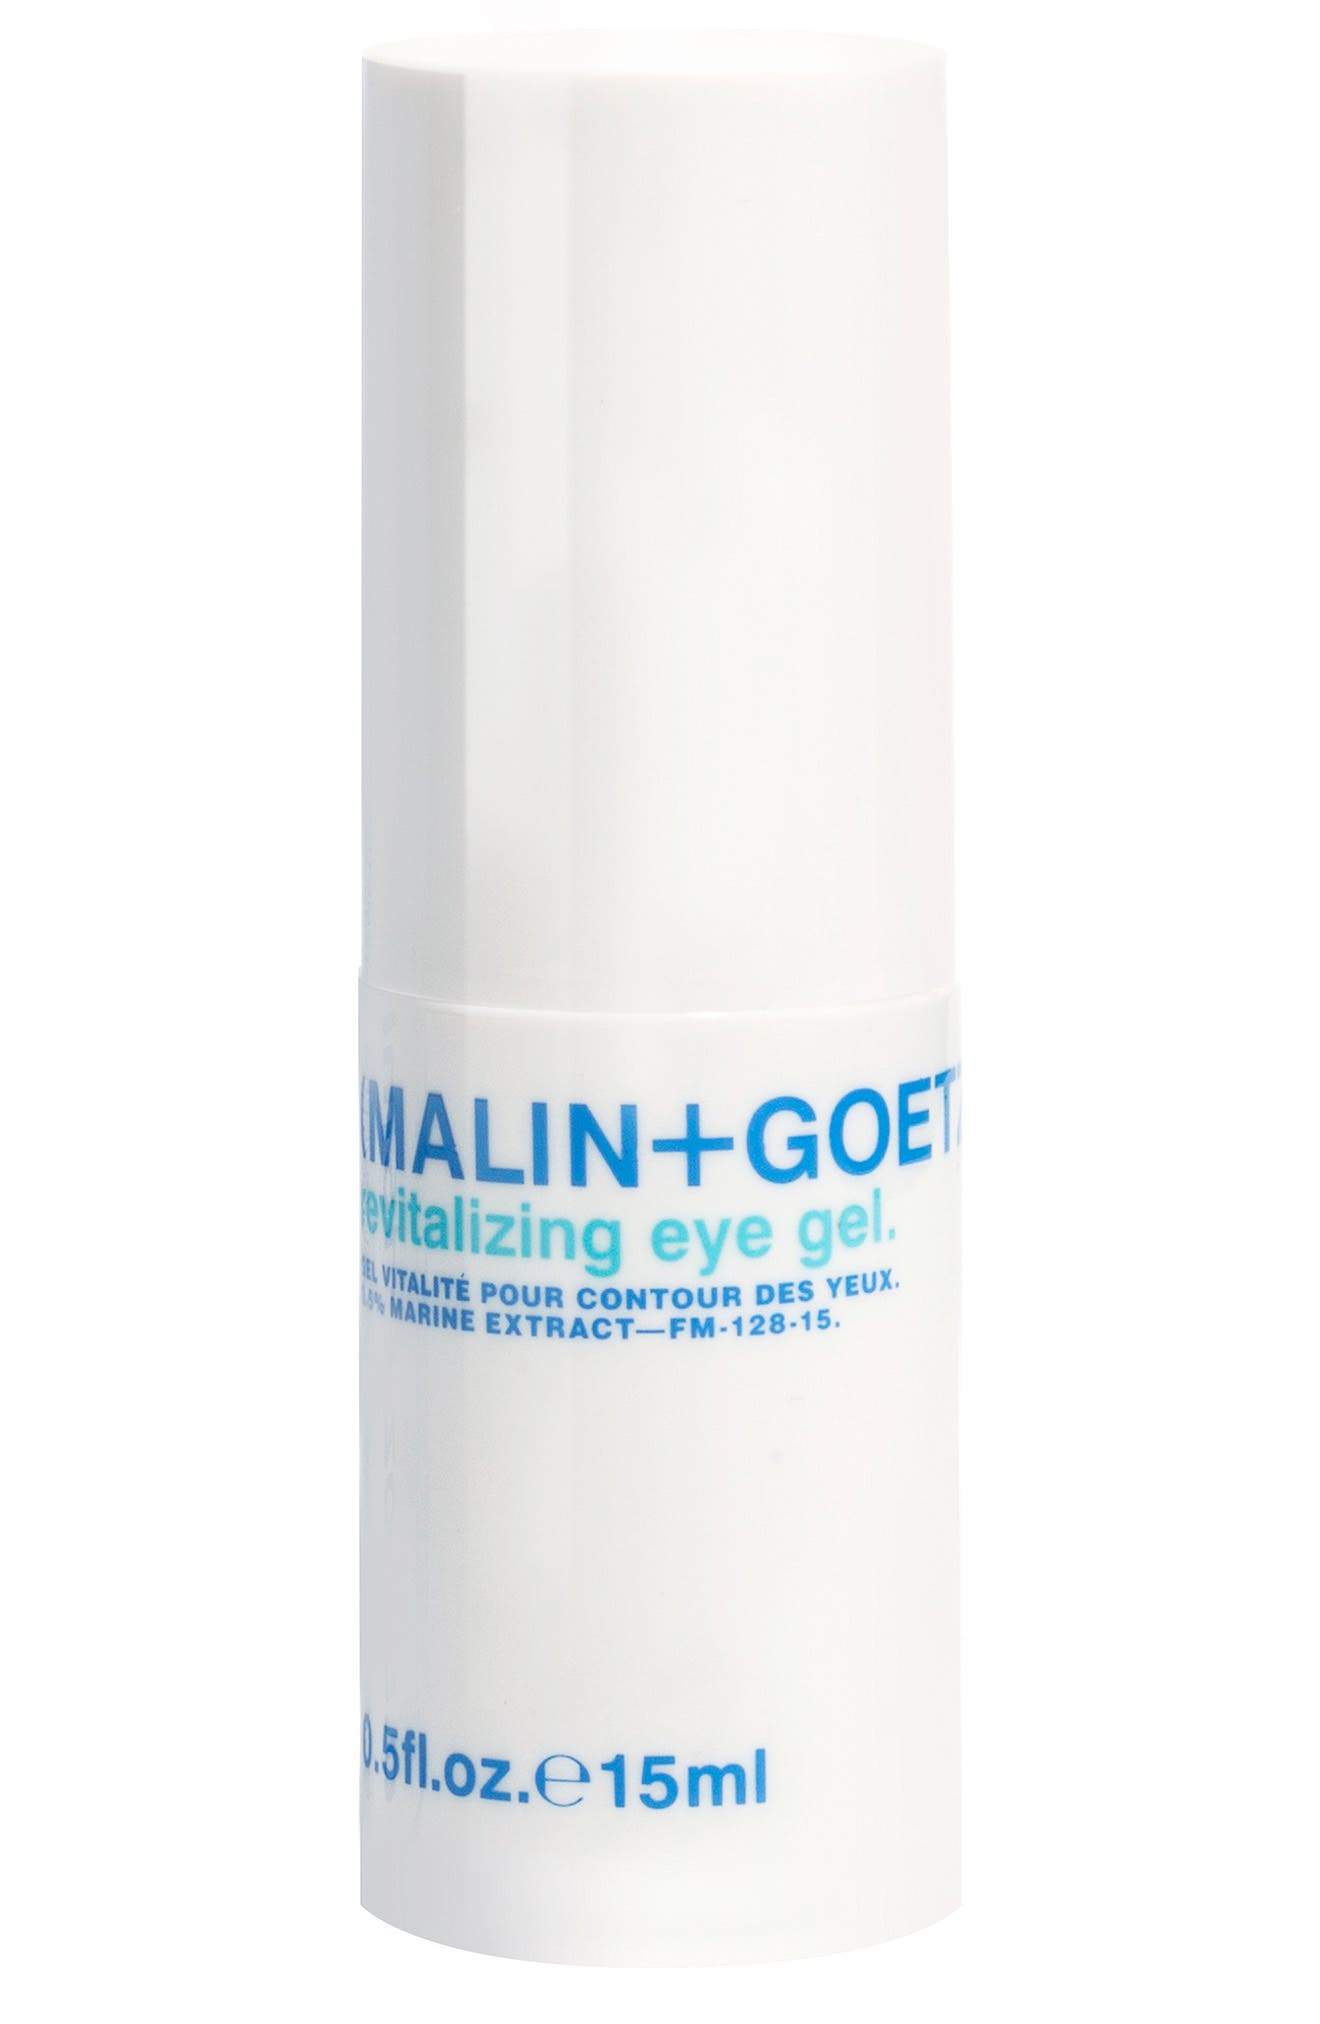 MALIN+GOETZ Revitalizing Eye Gel